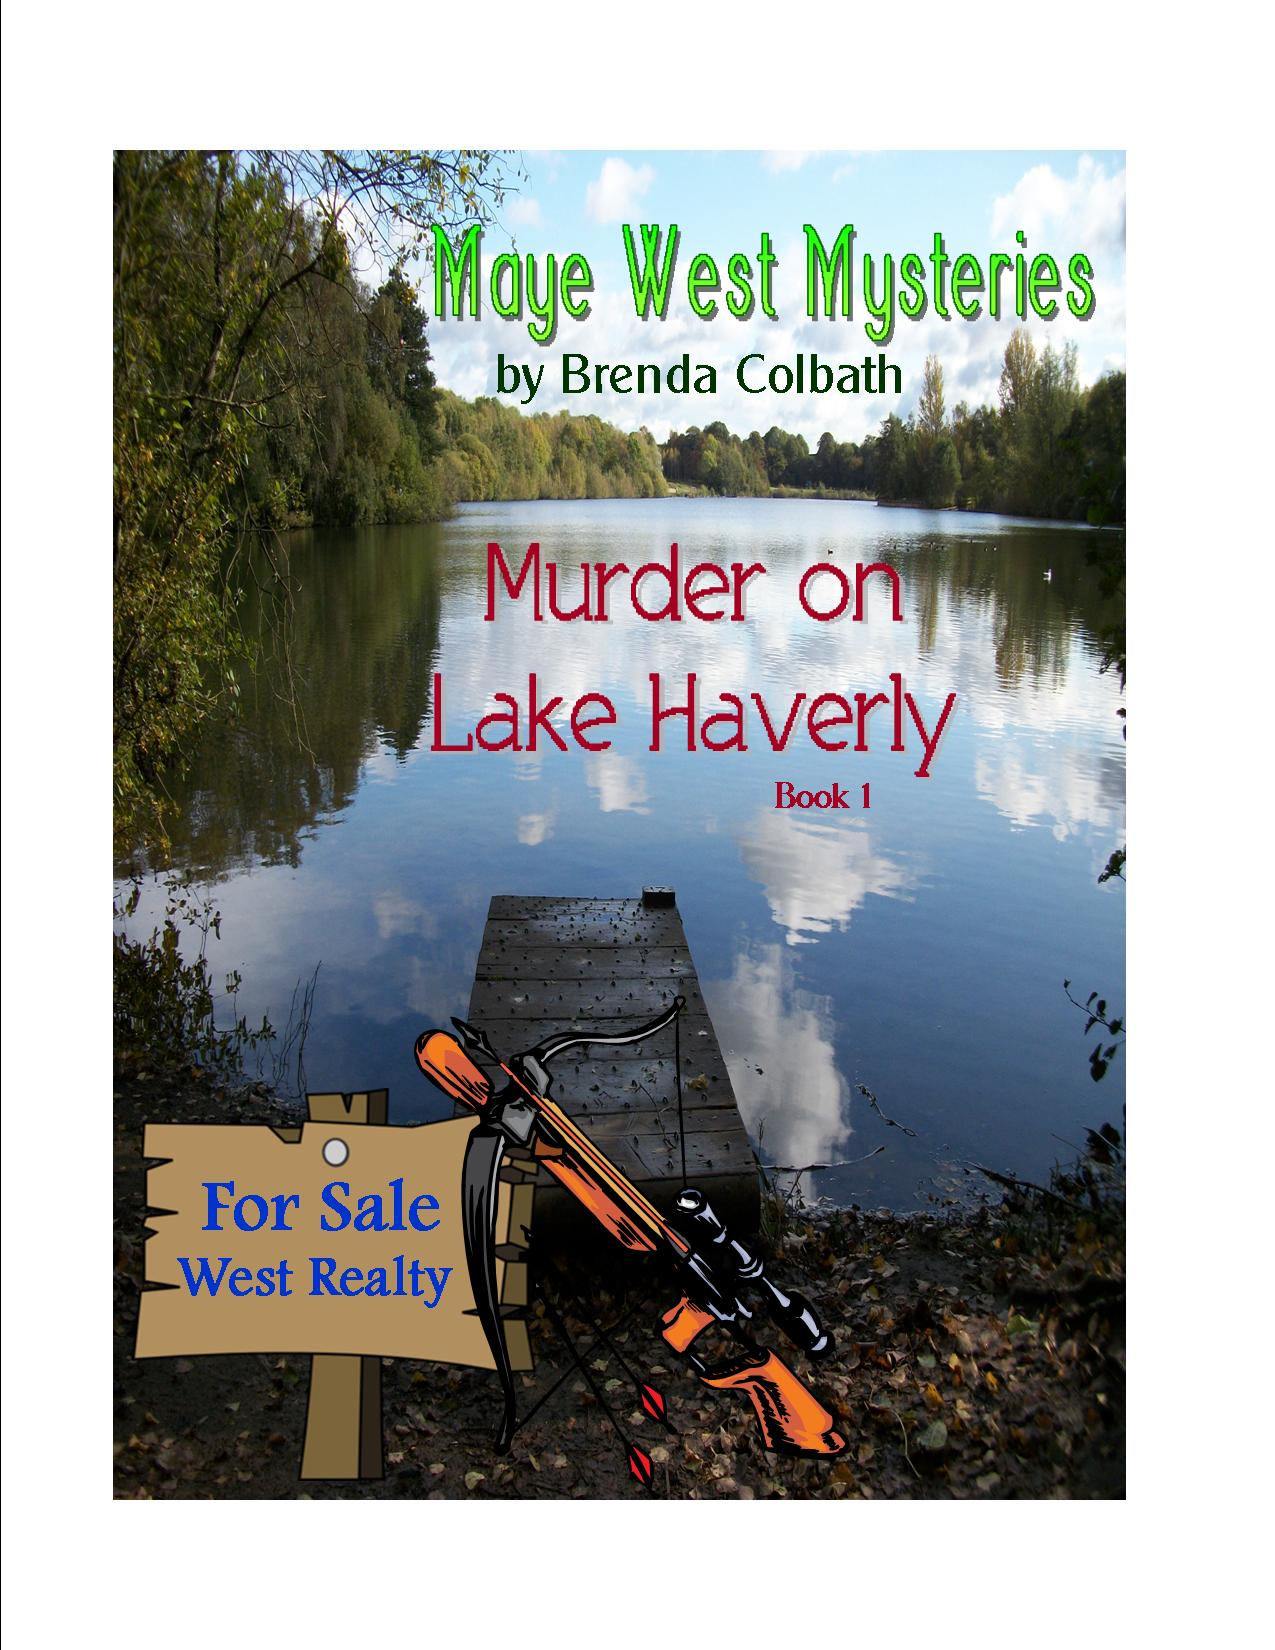 mwmysteries-book-1-cover-9